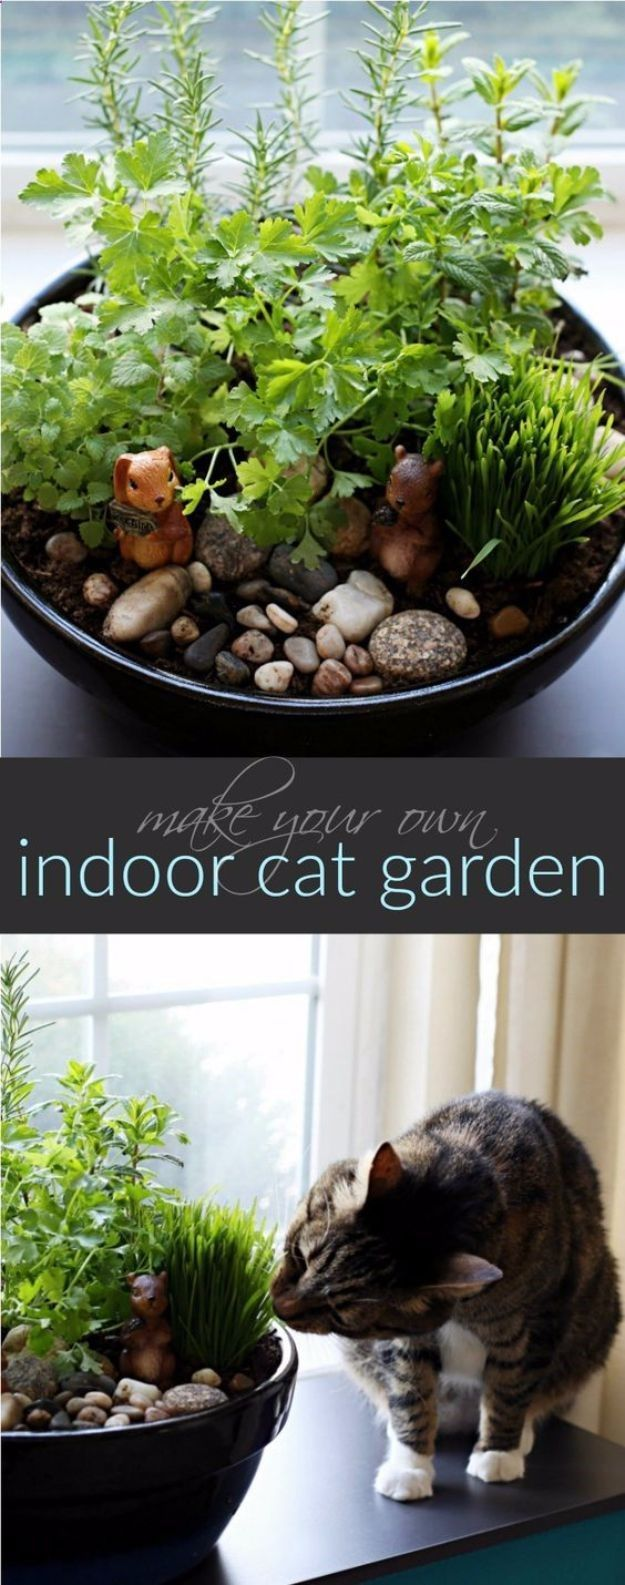 Terrace Garden - DIY Cat Hacks - Make Your Own Cat Indoor Garden - Tips and Tricks Ideas for Cat Beds and Toys, Homemade Remedies for Fleas and Scratching - Do It Yourself Cat Treat Recips, Food and Gear for Your Pet - Cool Gifts for Cats diyjoy.com/... This time, we will know how to decorate your balcony and your garden easily with plants #catsdiytreats